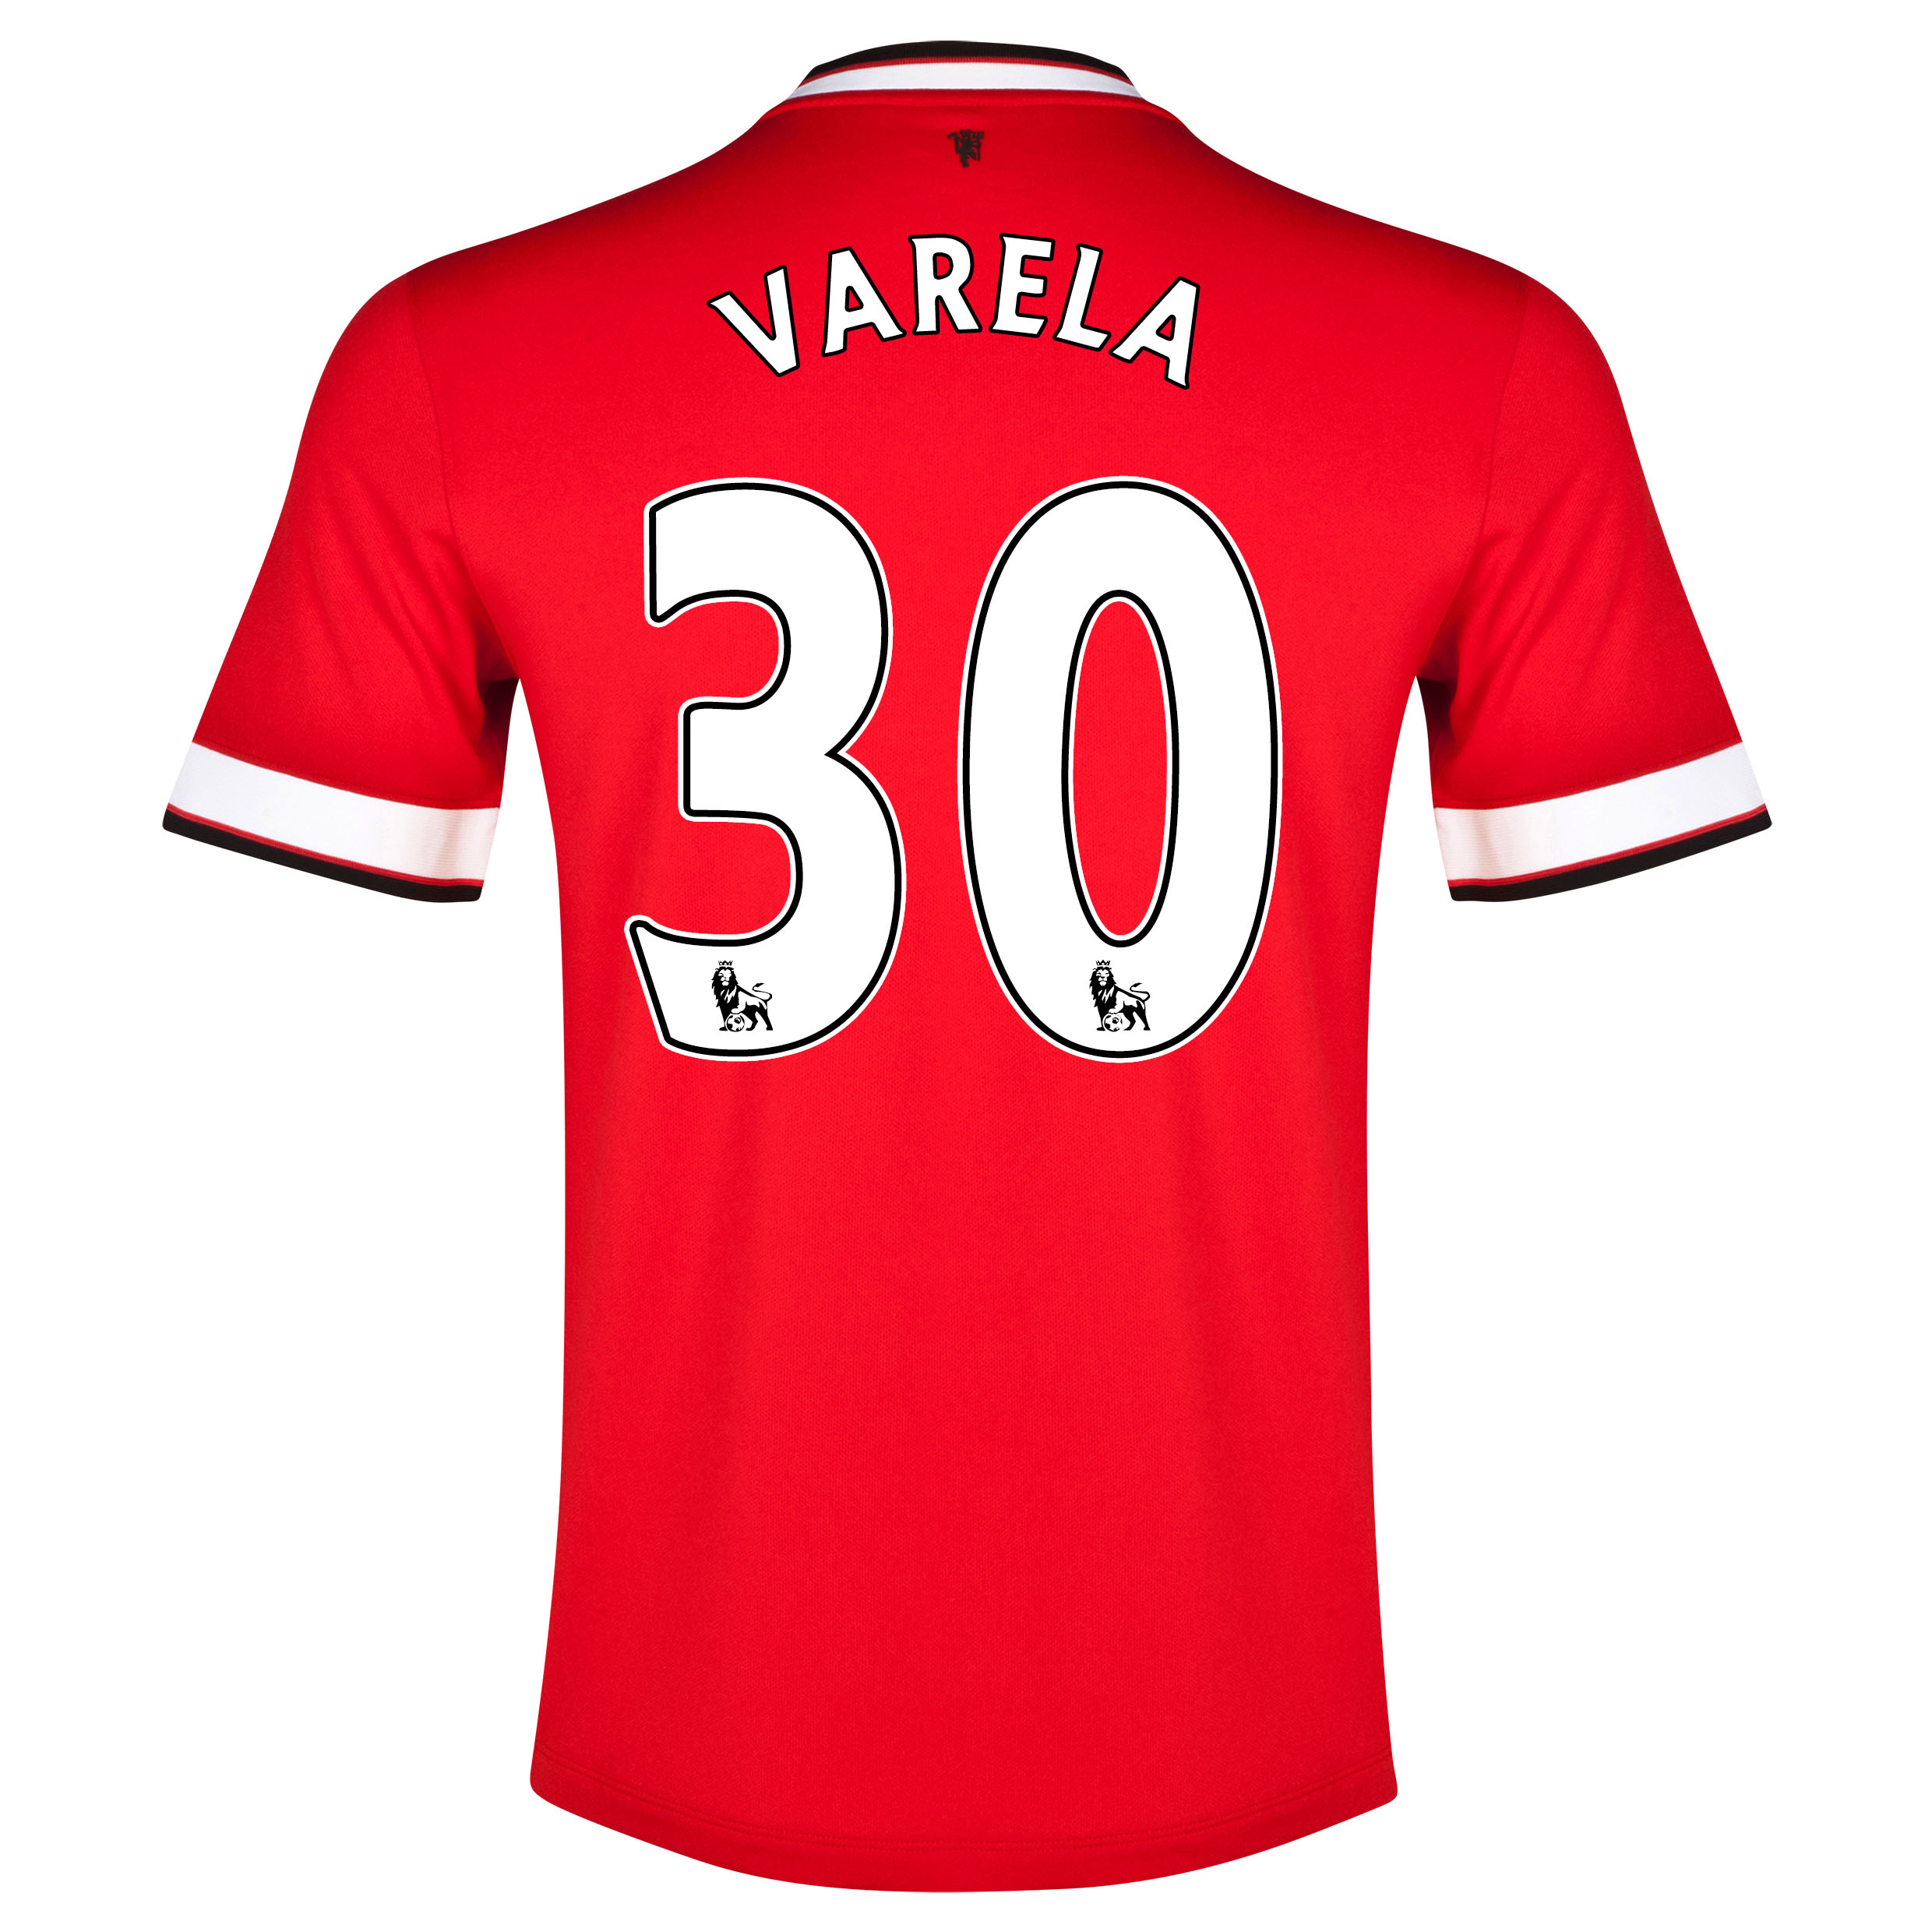 Manchester United Home Shirt 2014/15 with Varela 30 printing